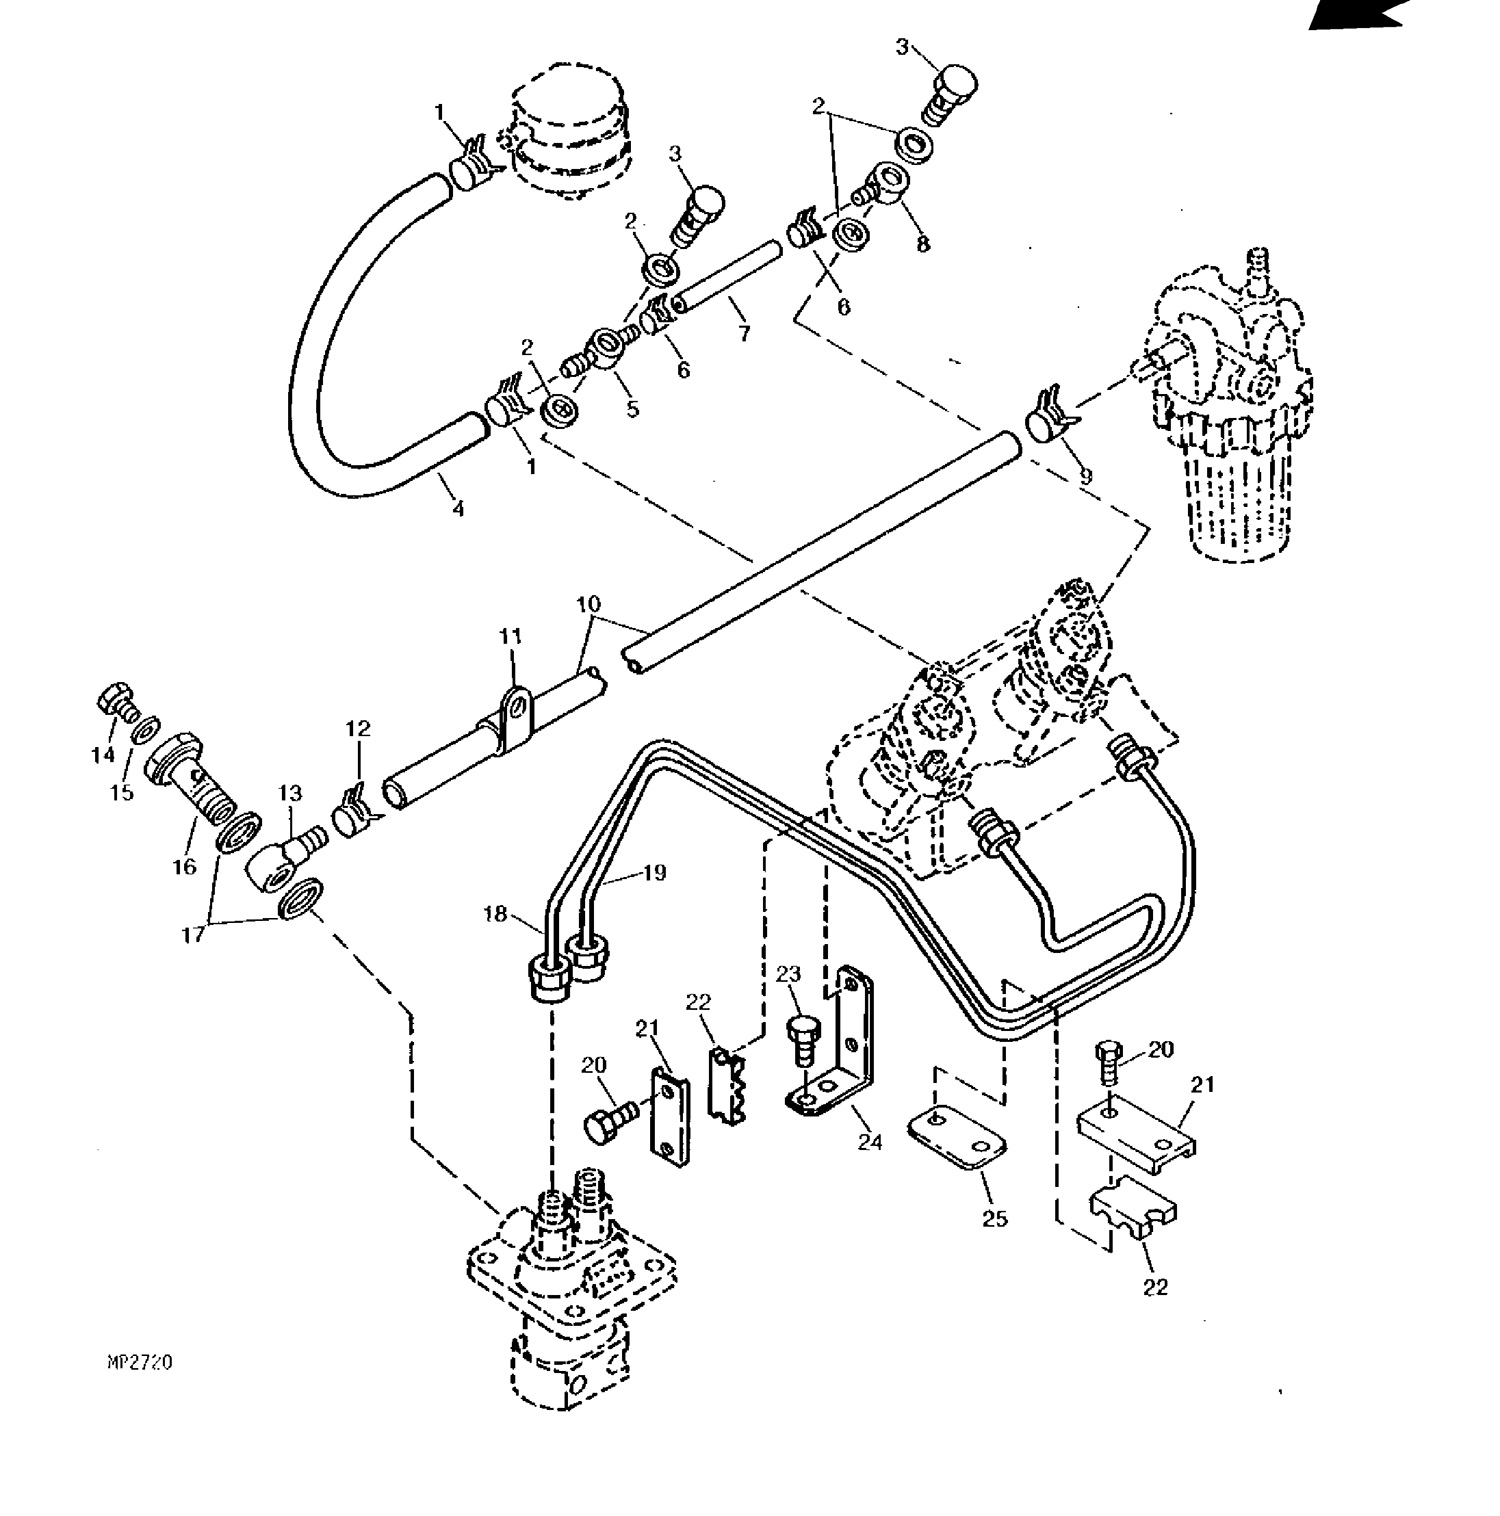 Kubota Tractor Wiring Diagrams Kubota Wiring Diagram Images